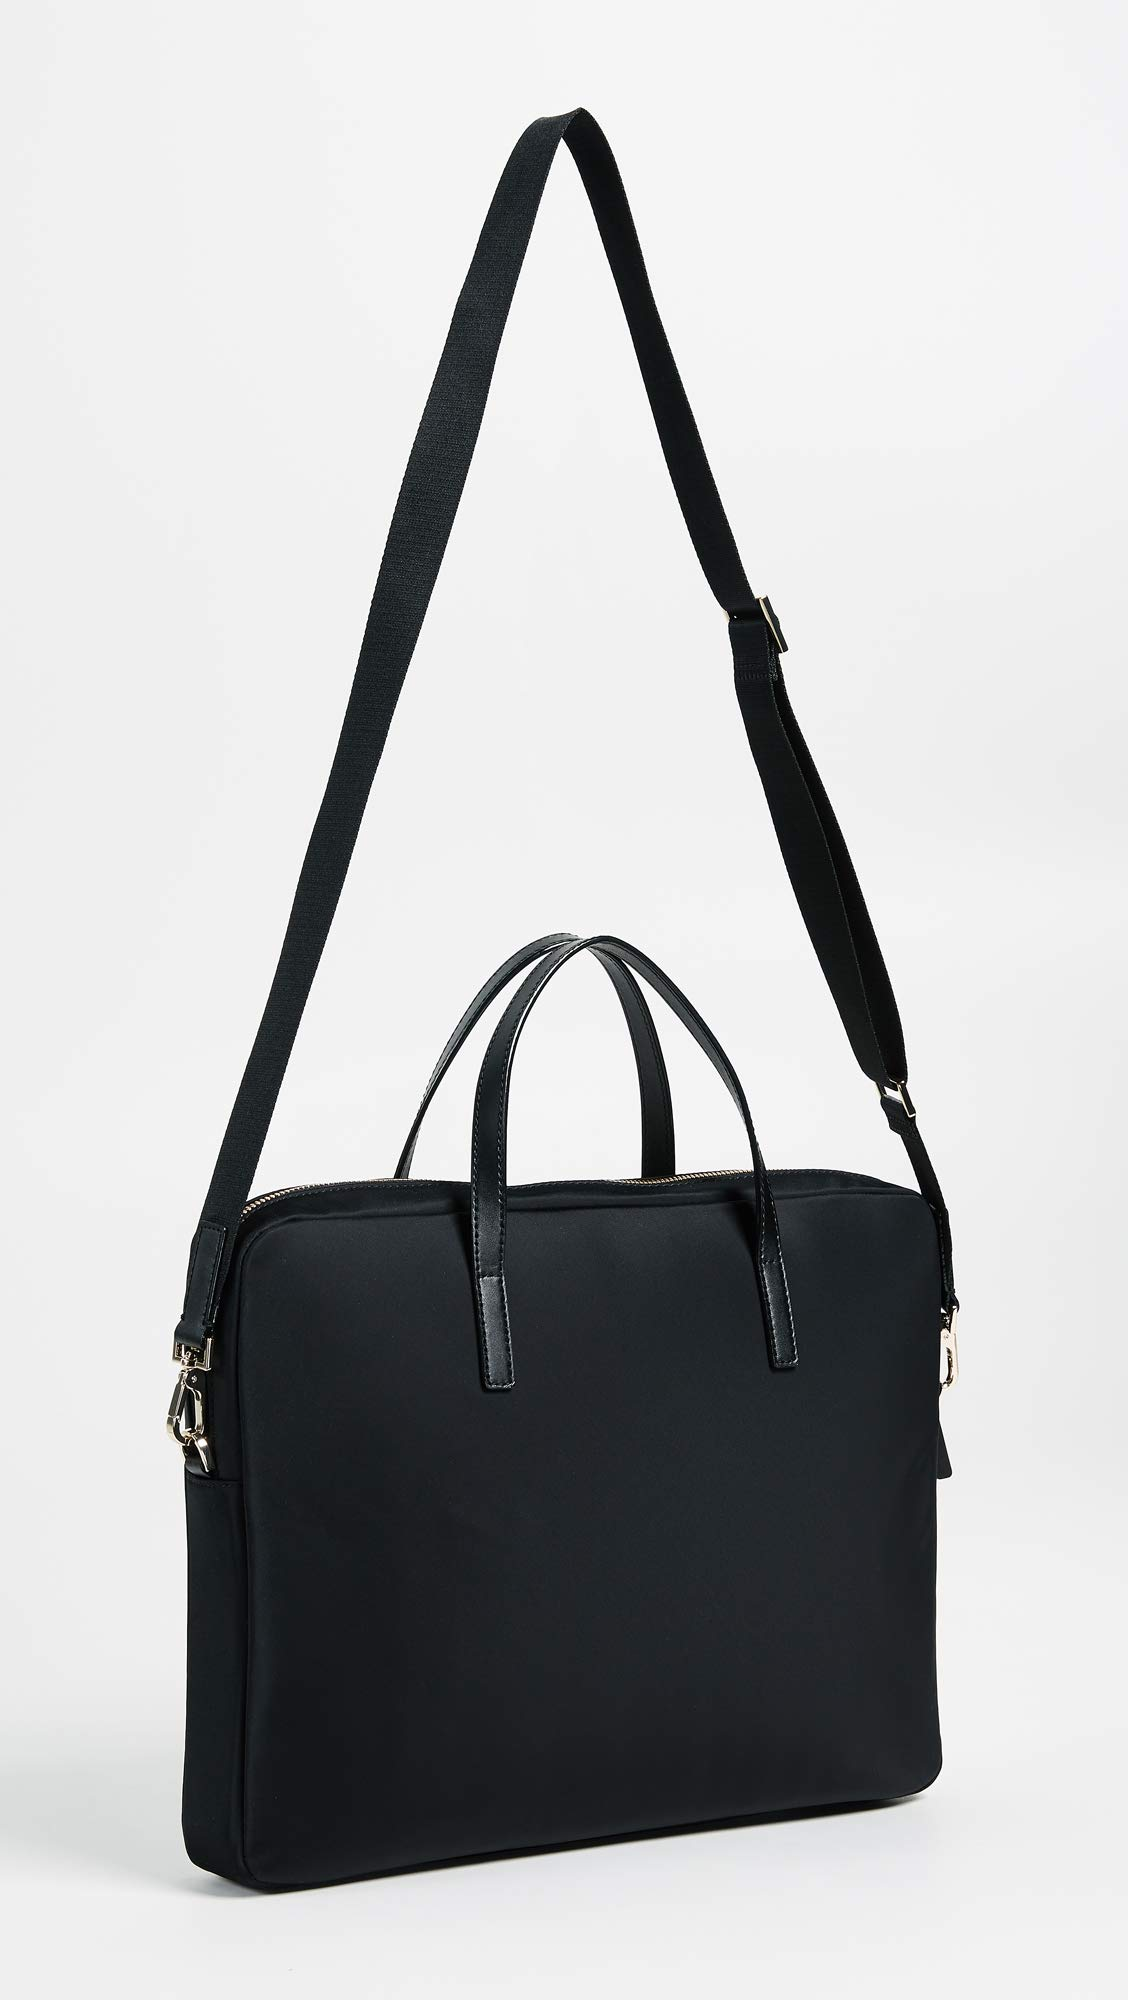 Kate Spade New York Universal Laptop Commuter Case, Black, One Size by Kate Spade New York (Image #2)